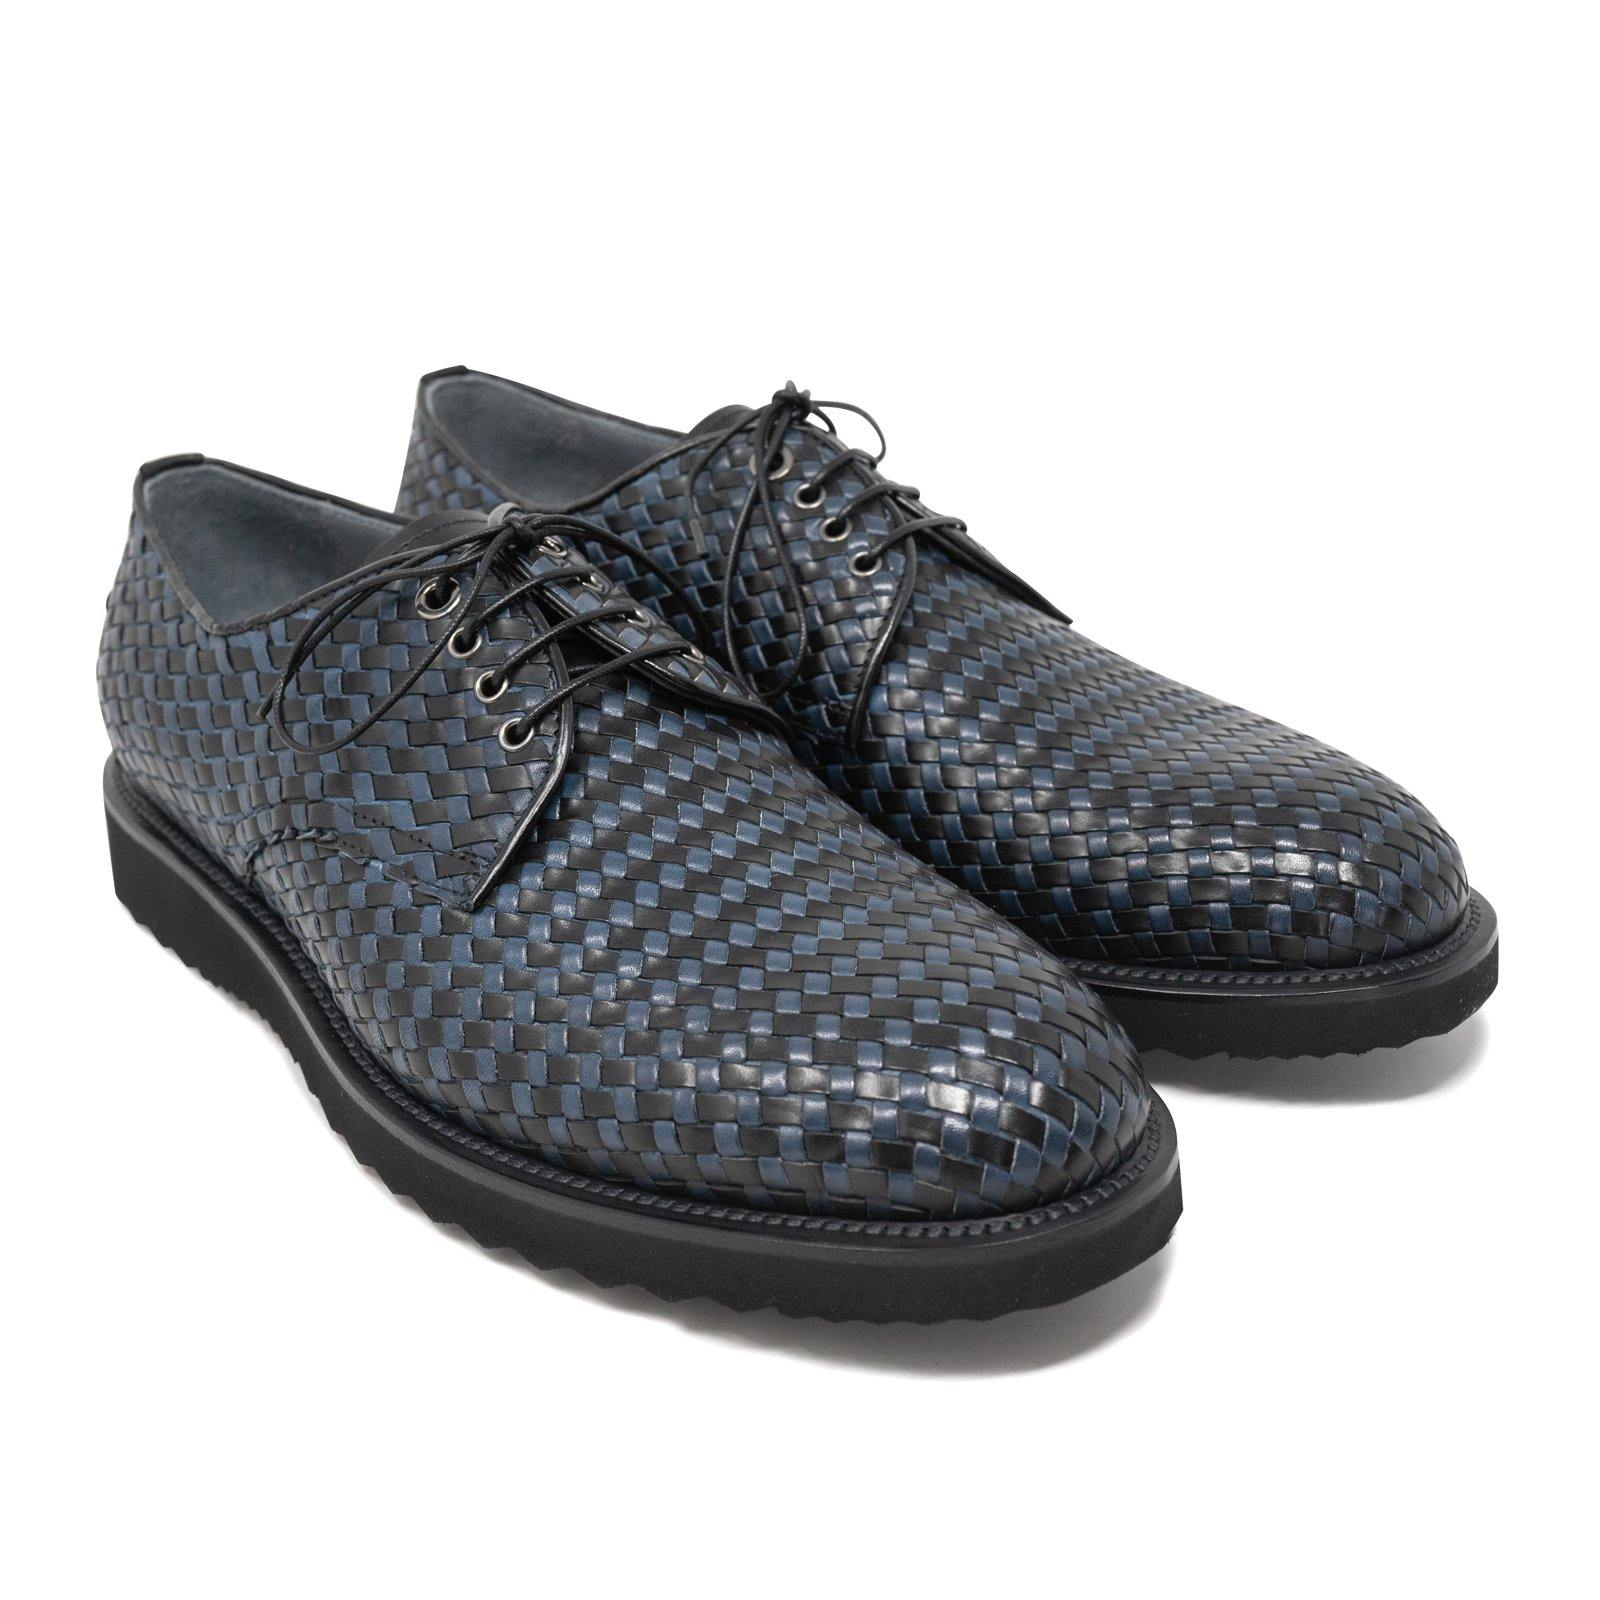 Lace Up Men Shoes in Black and Blue Intrecciato Leather